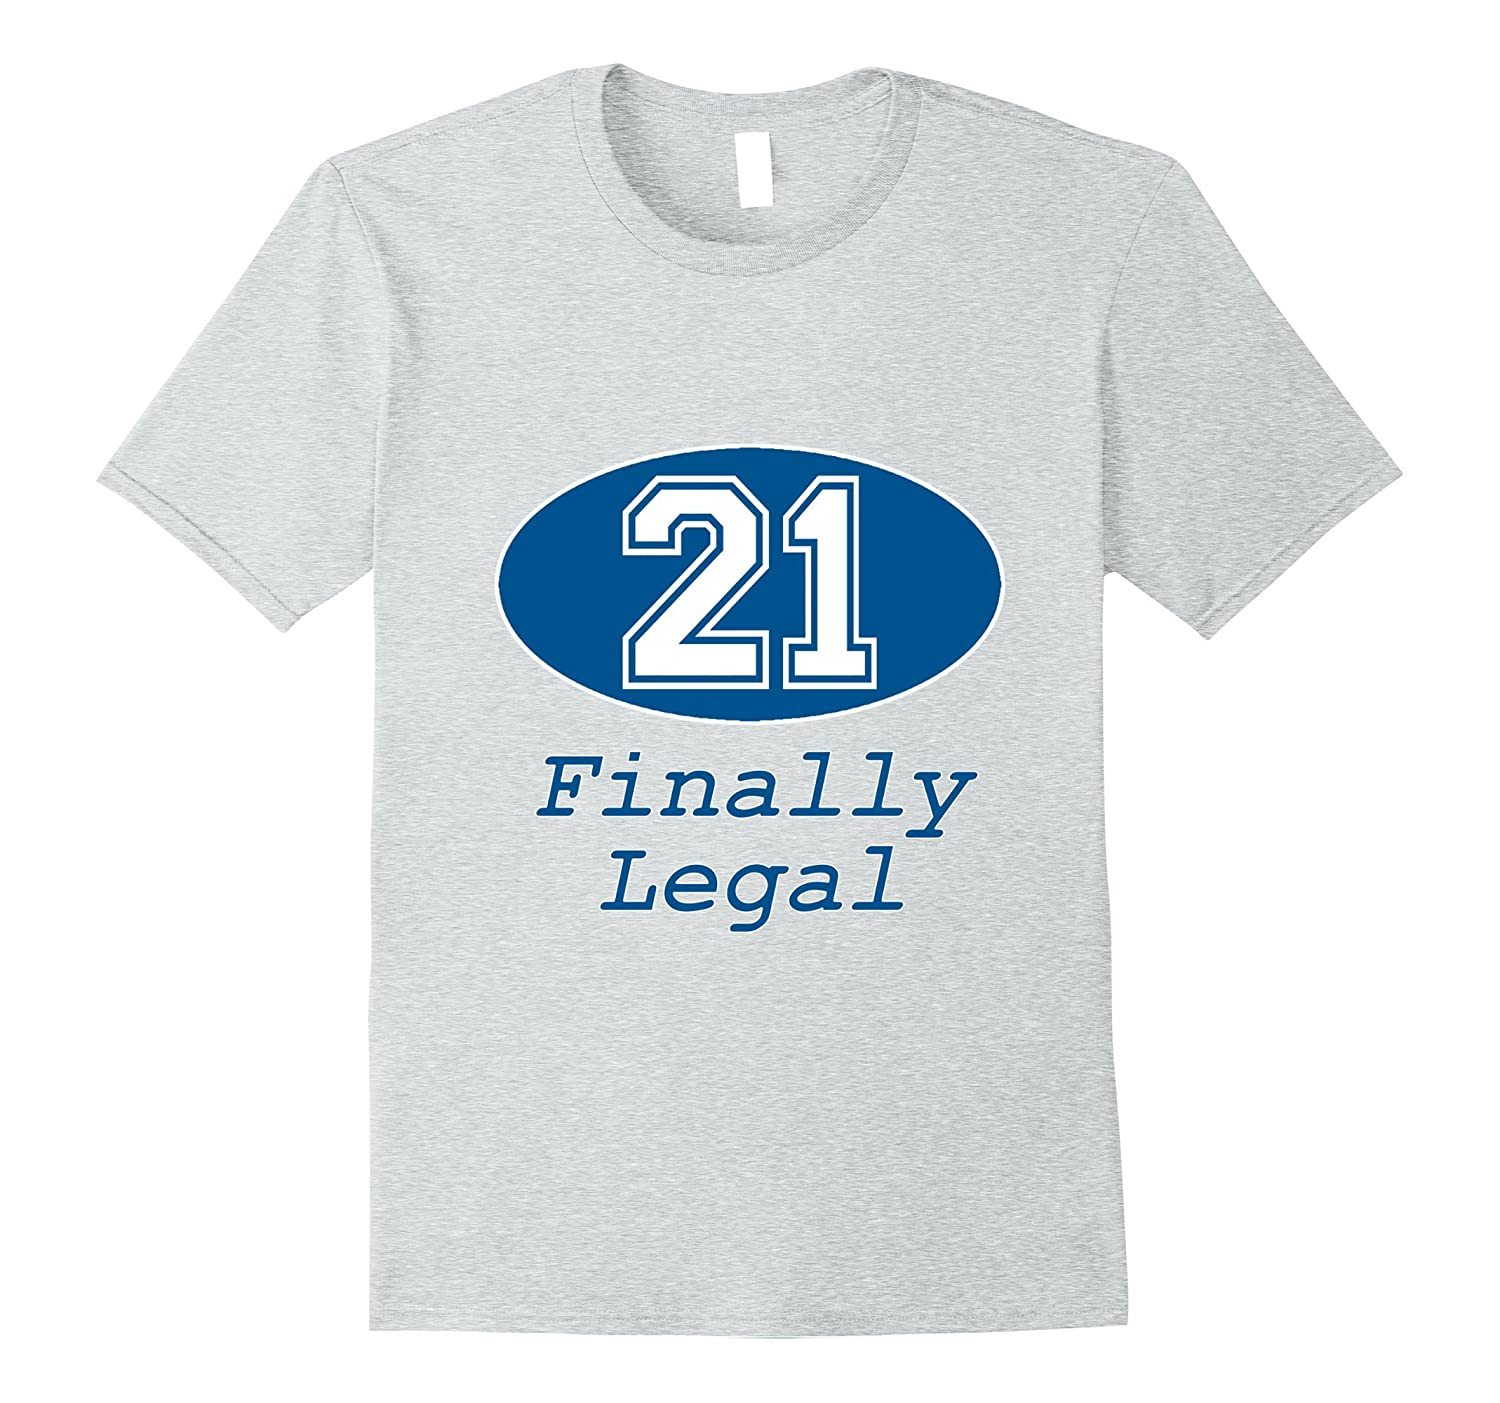 21st Birthday Party Gift 21 Years Old Finally Legal Tshirt 4LVS